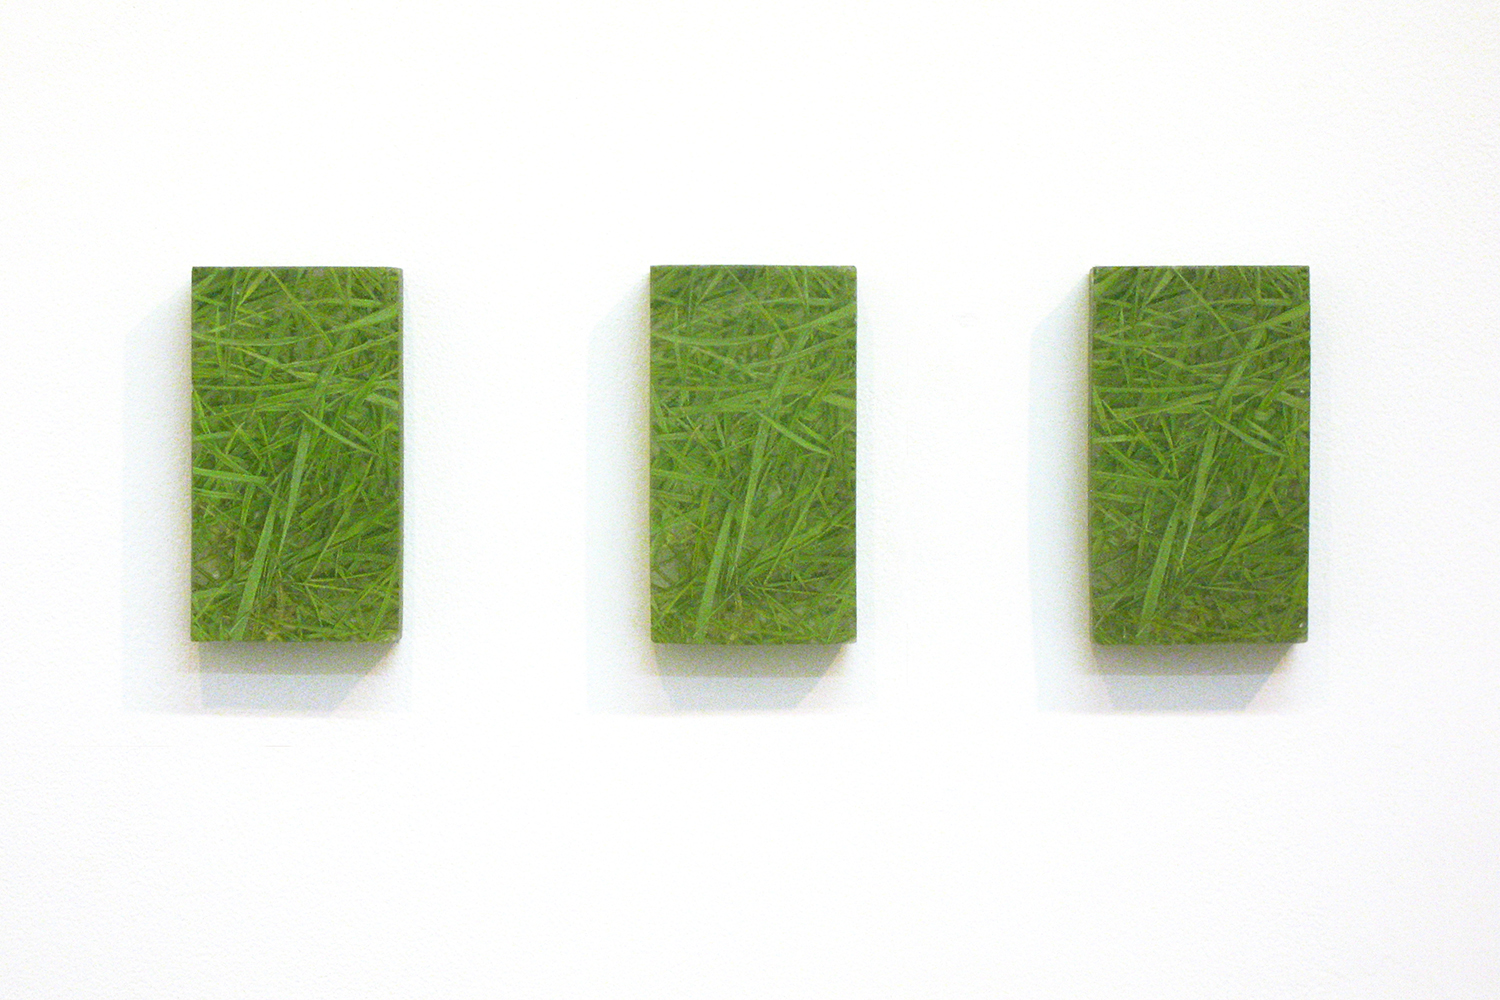 Photo painting-bush 叢|oil on polyester resin panel and mixed media|14.5 x 8 x 3 cm|2008 each